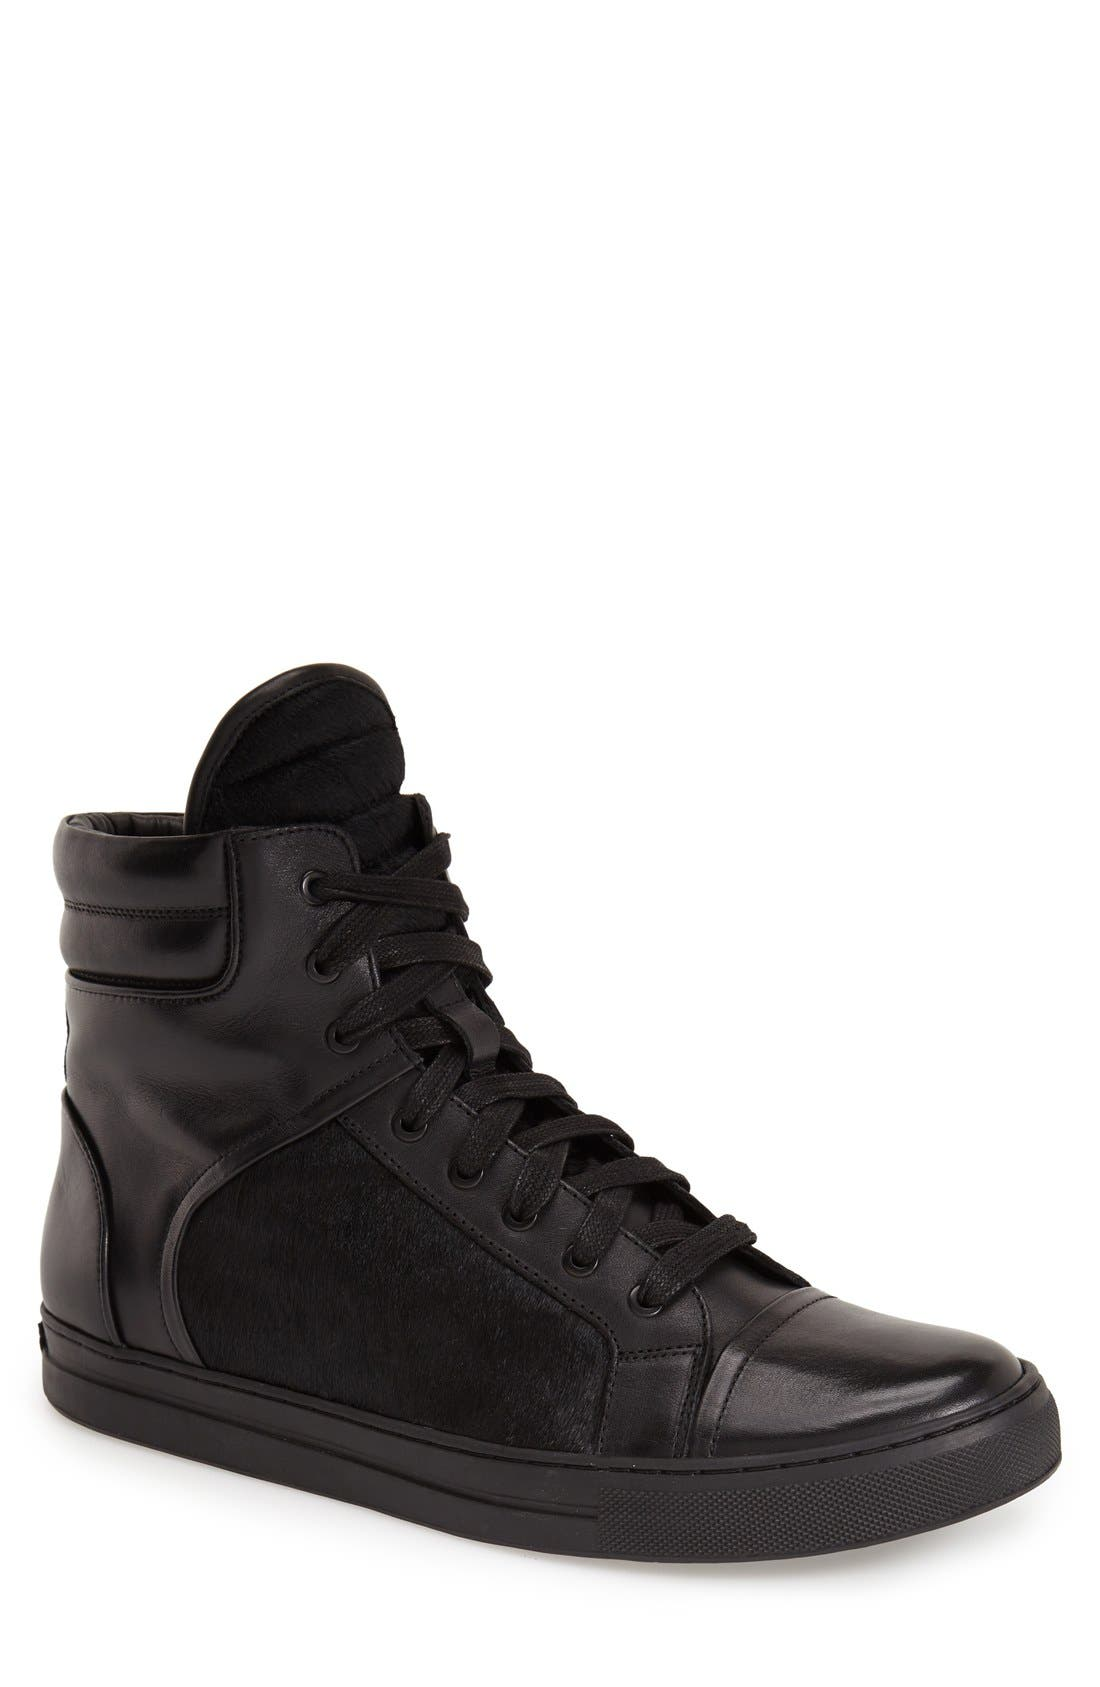 Alternate Image 1 Selected - Kenneth Cole New York 'Double Over' ZipHigh Top Sneaker (Men)